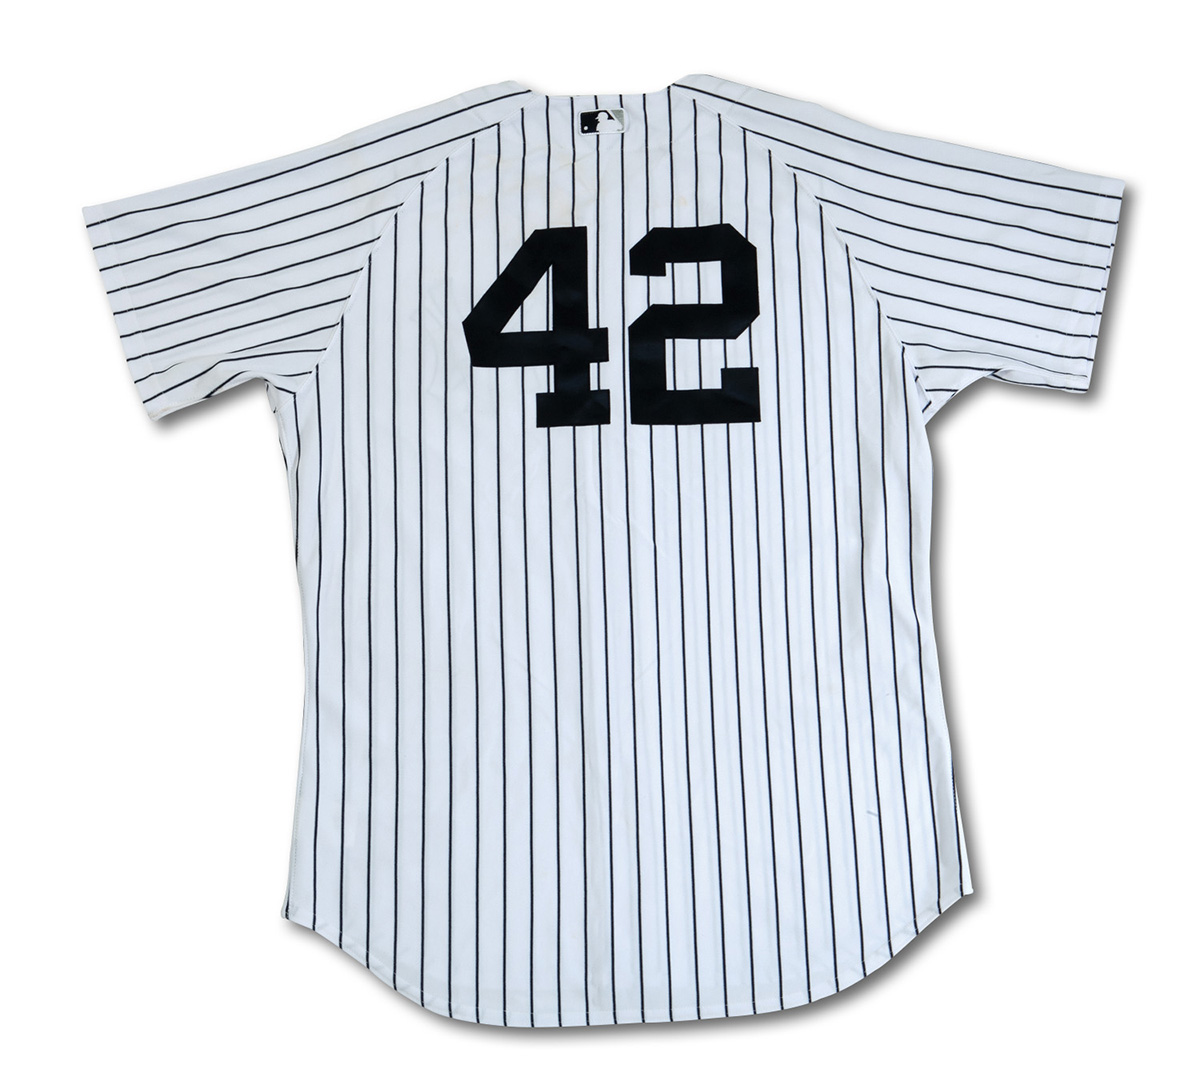 new product d16f6 056be SCP Auctions to sell New York Yankees' No. 42 jerseys for ...